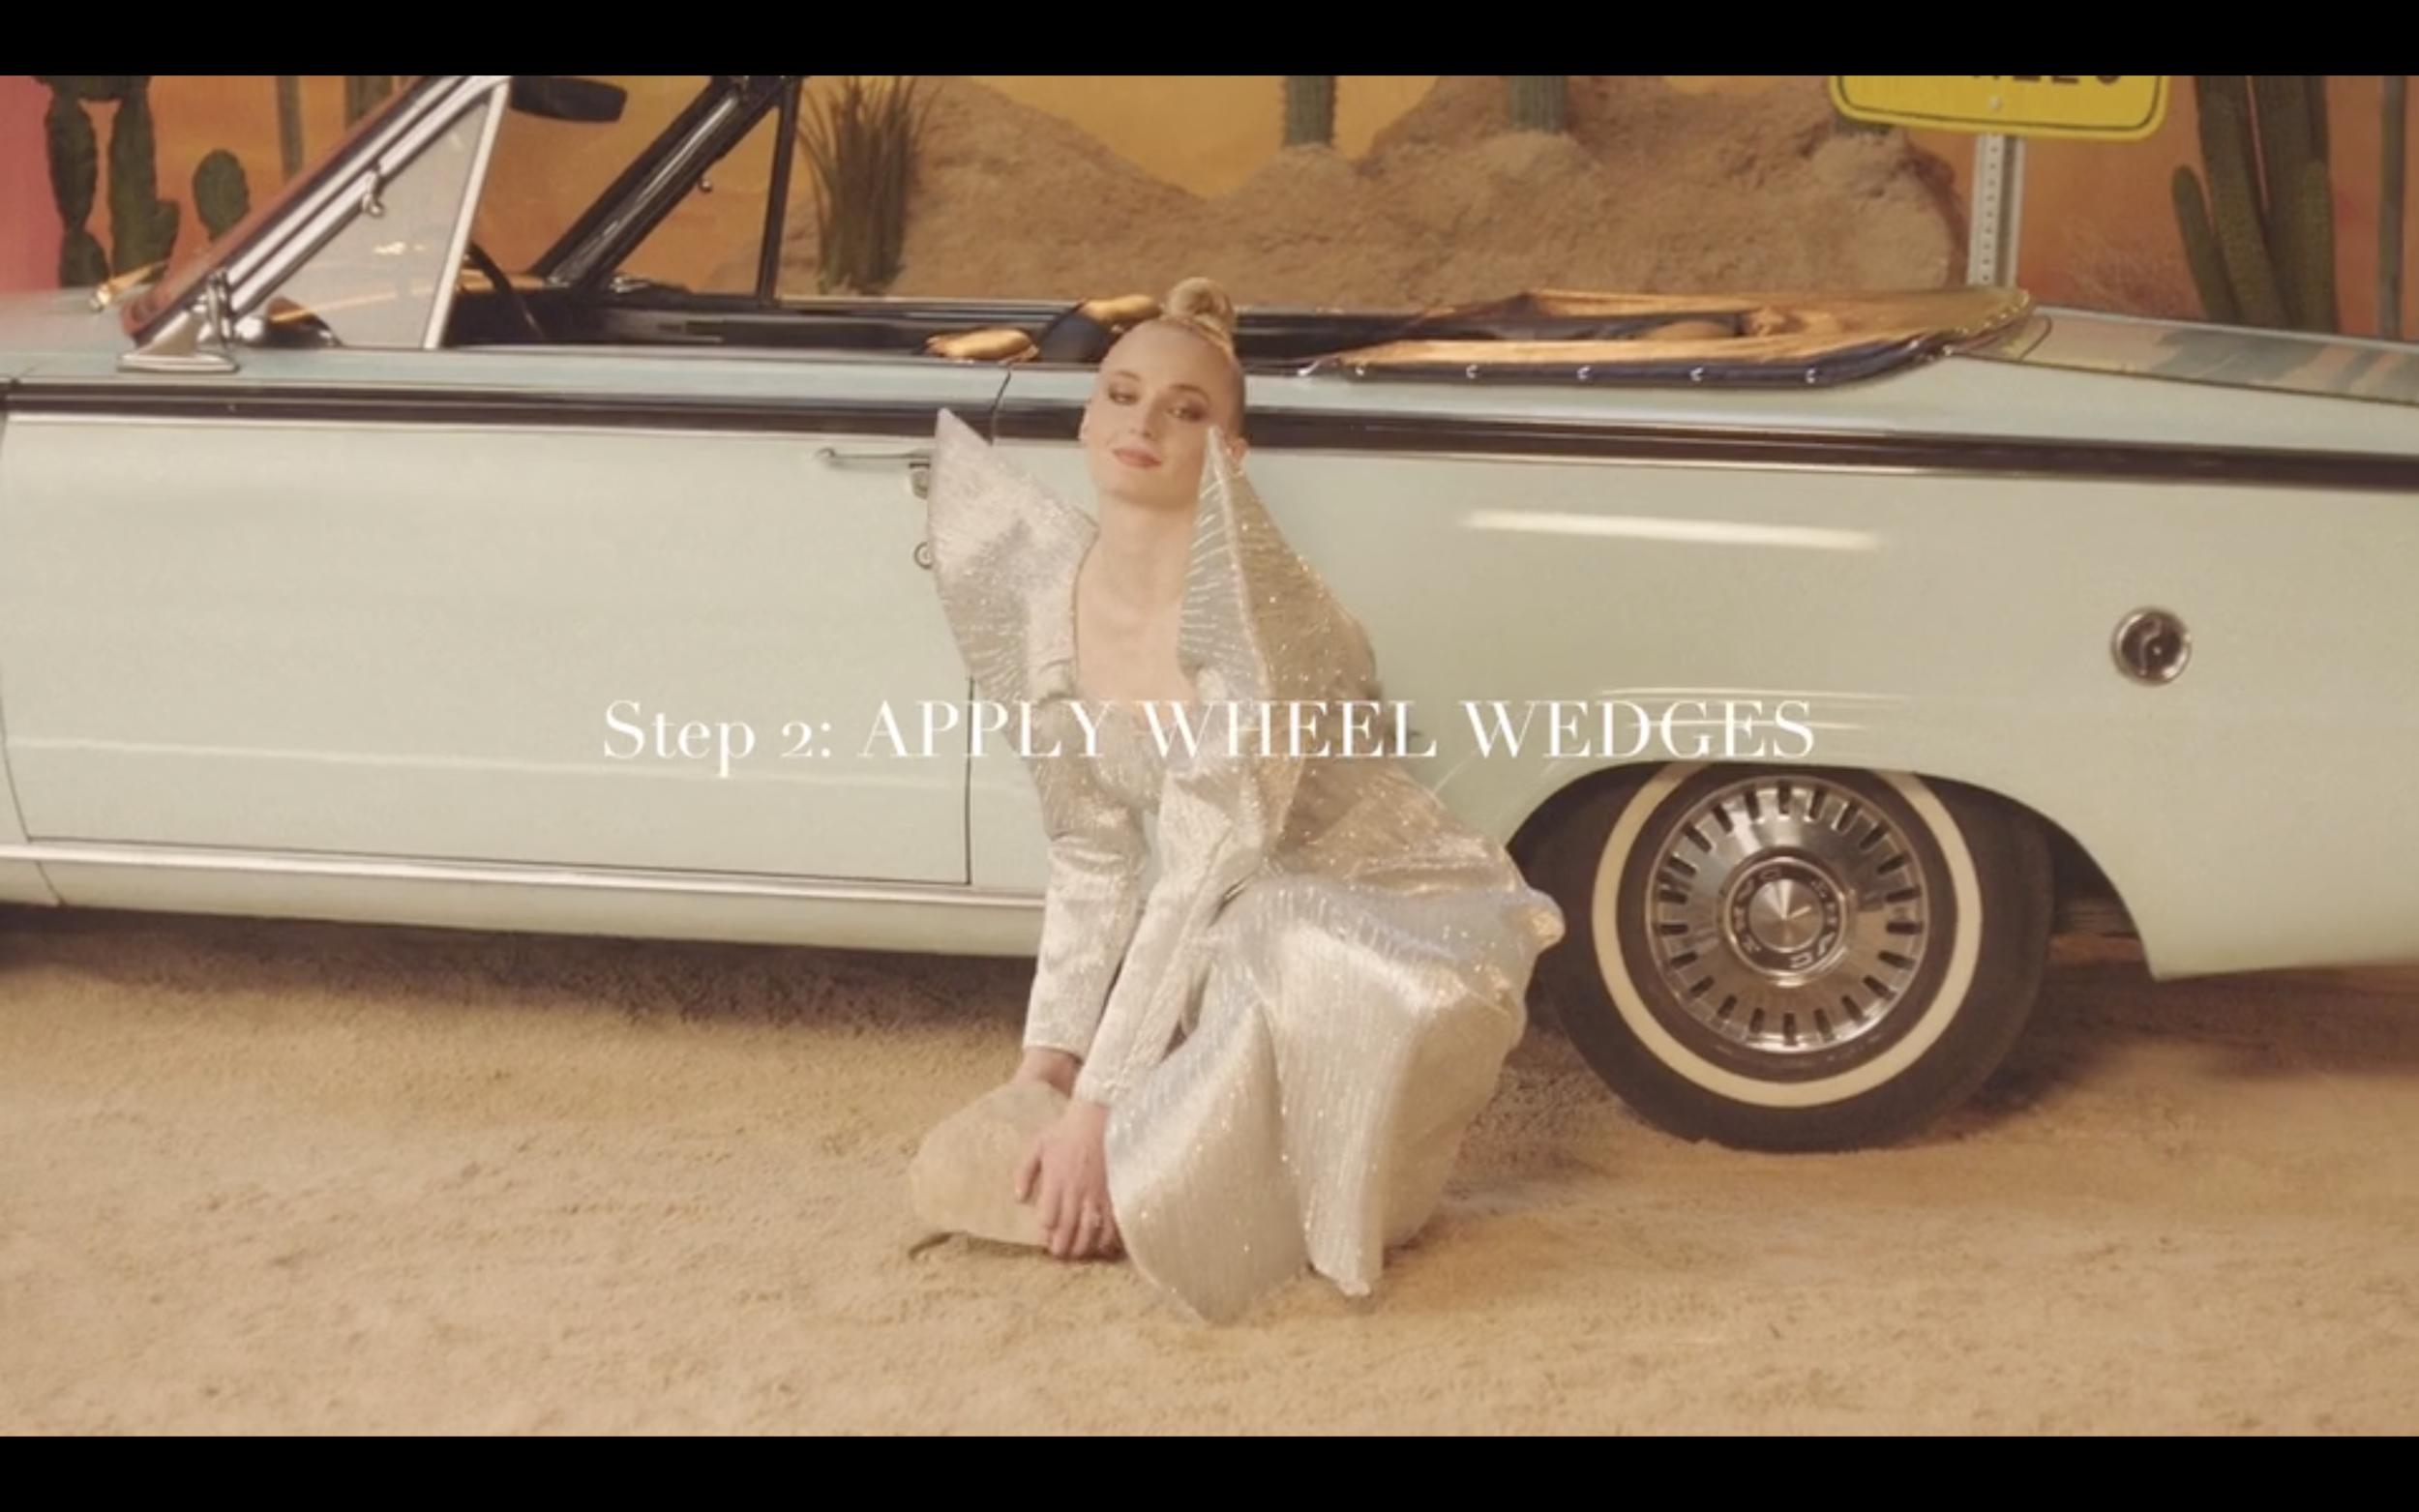 """Vogue """"Do it the Vogue Way: How to Change a Tyre with Sophie Turner"""" (Director's Cut)"""